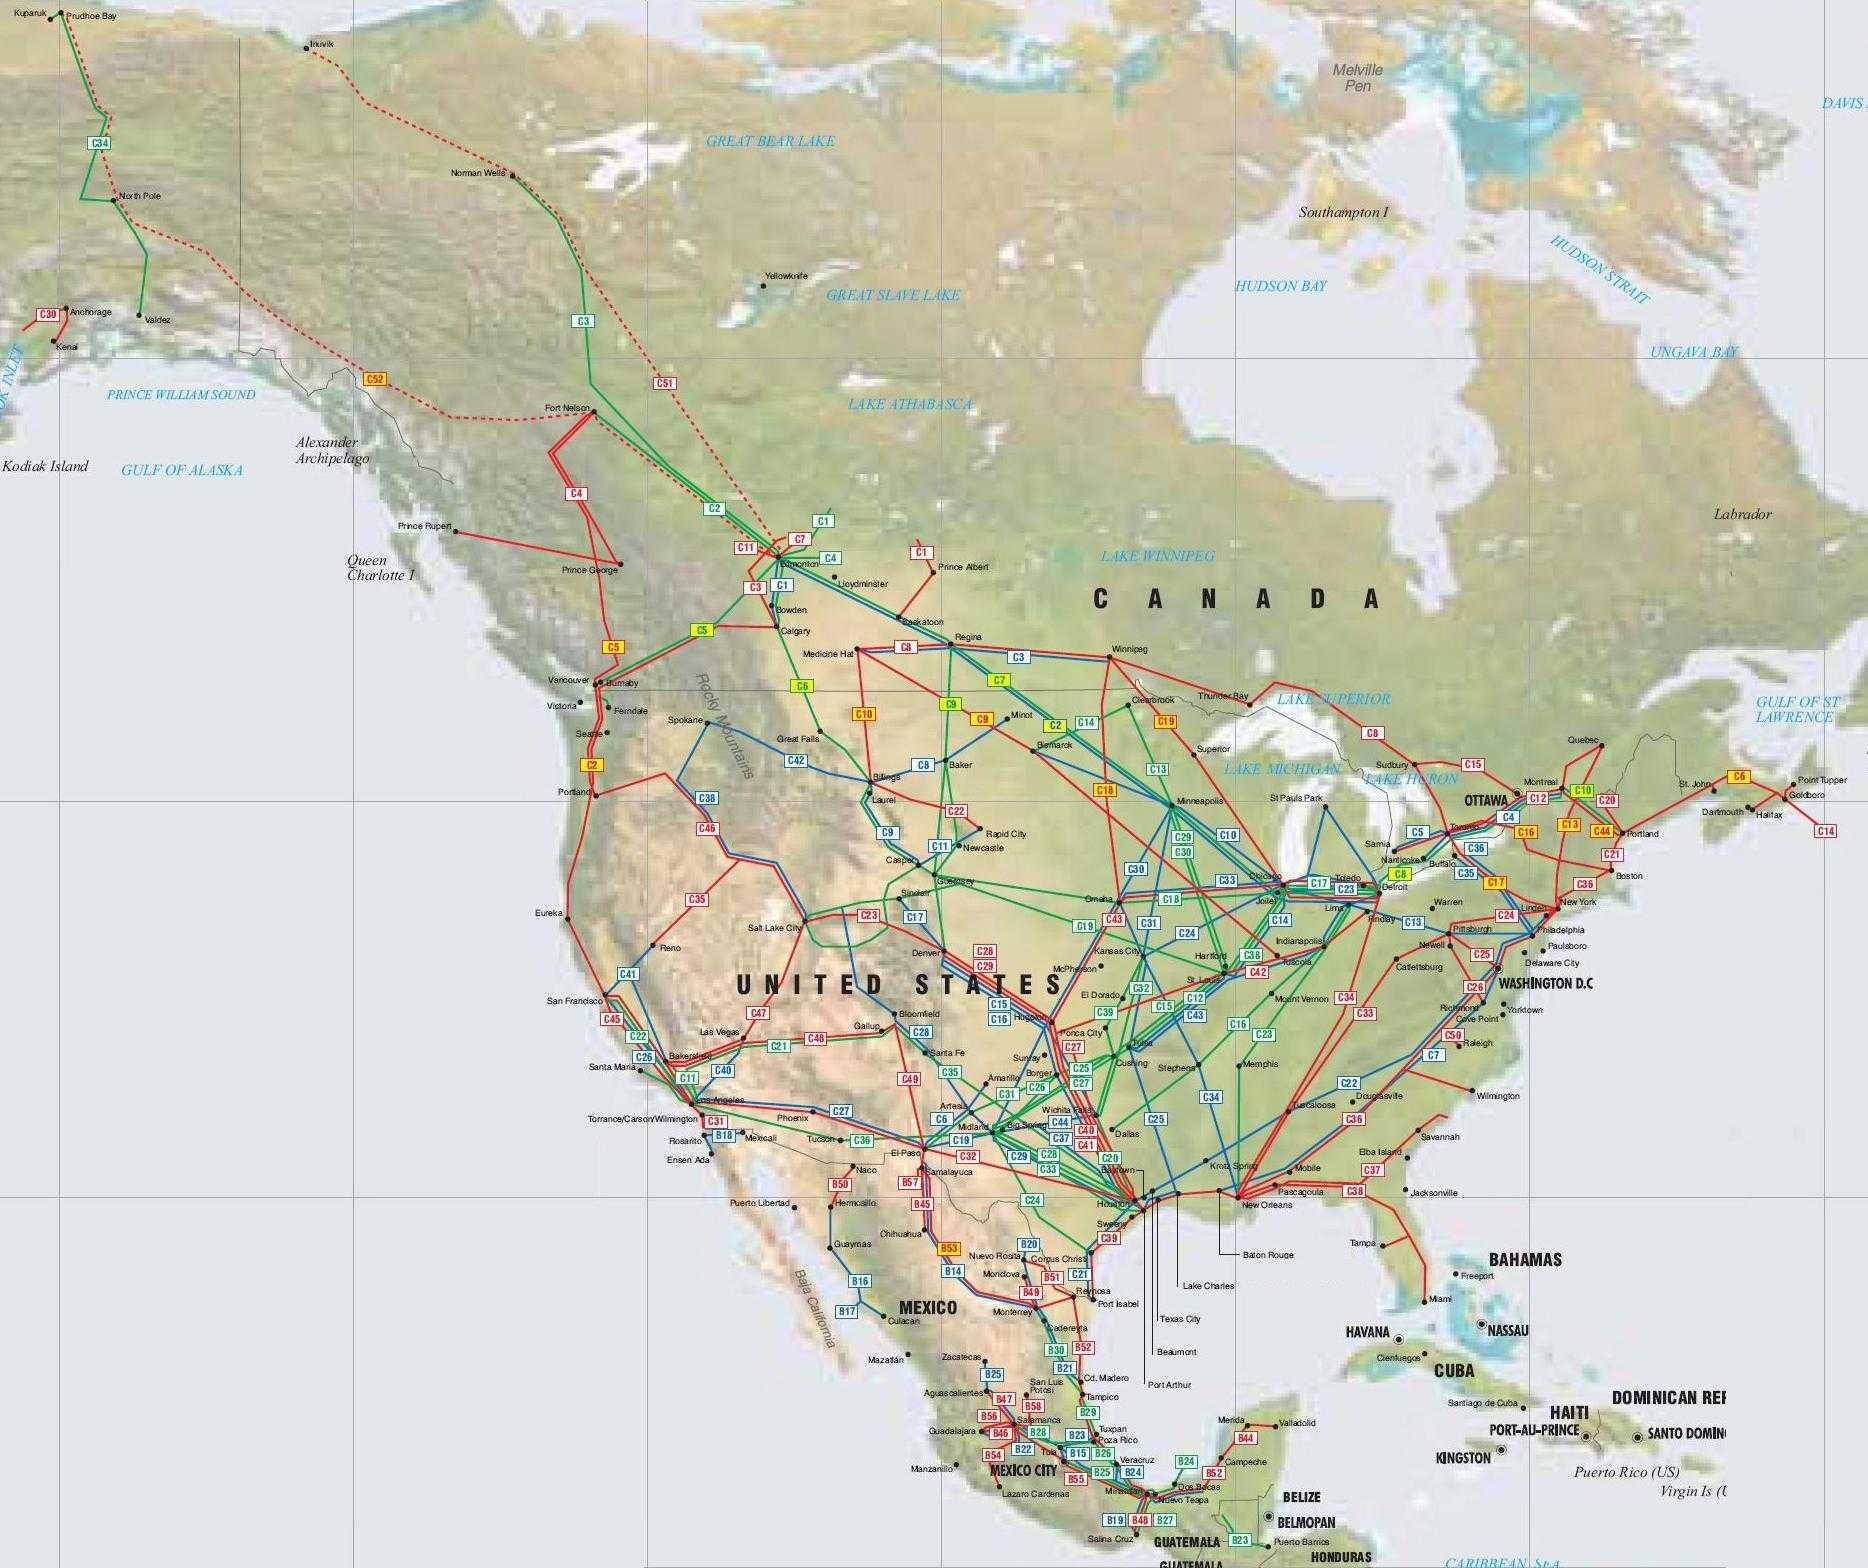 North American pipelines map